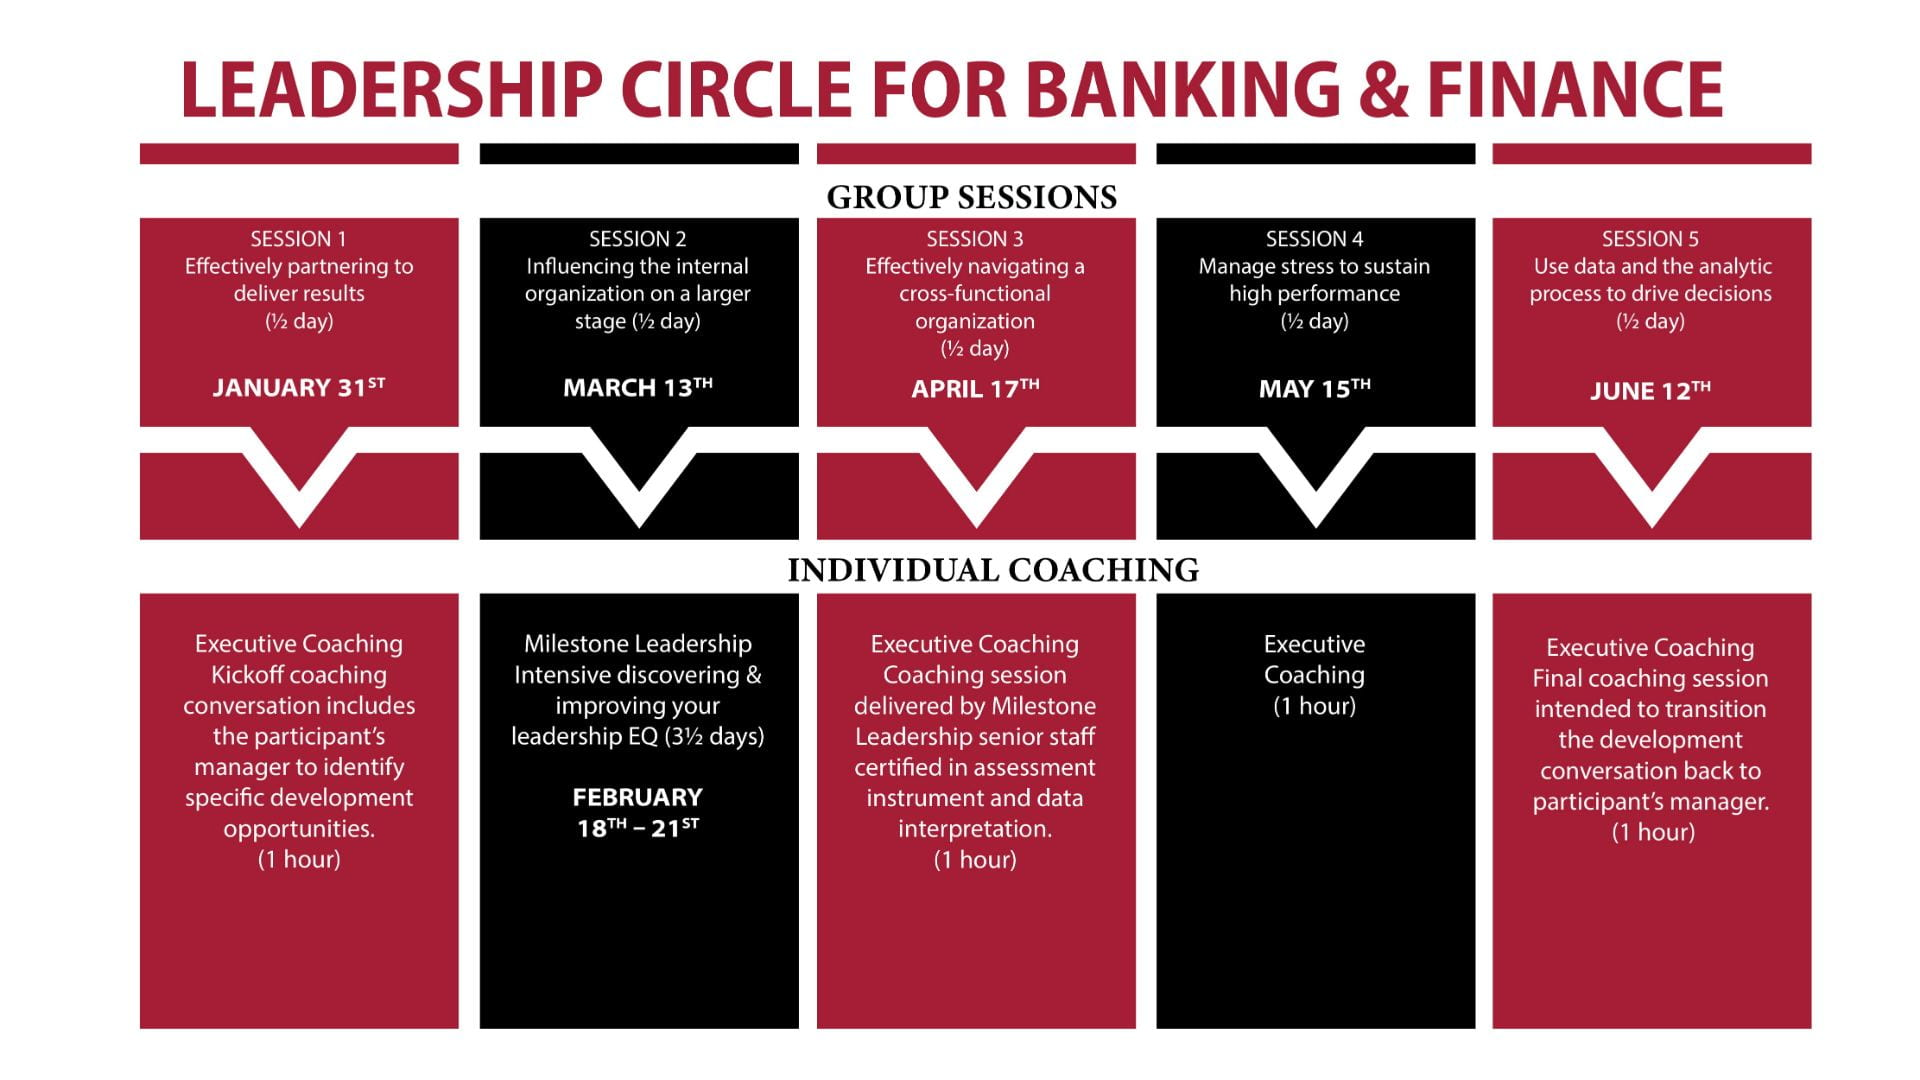 Finance_leadershipcircle_infographic-1